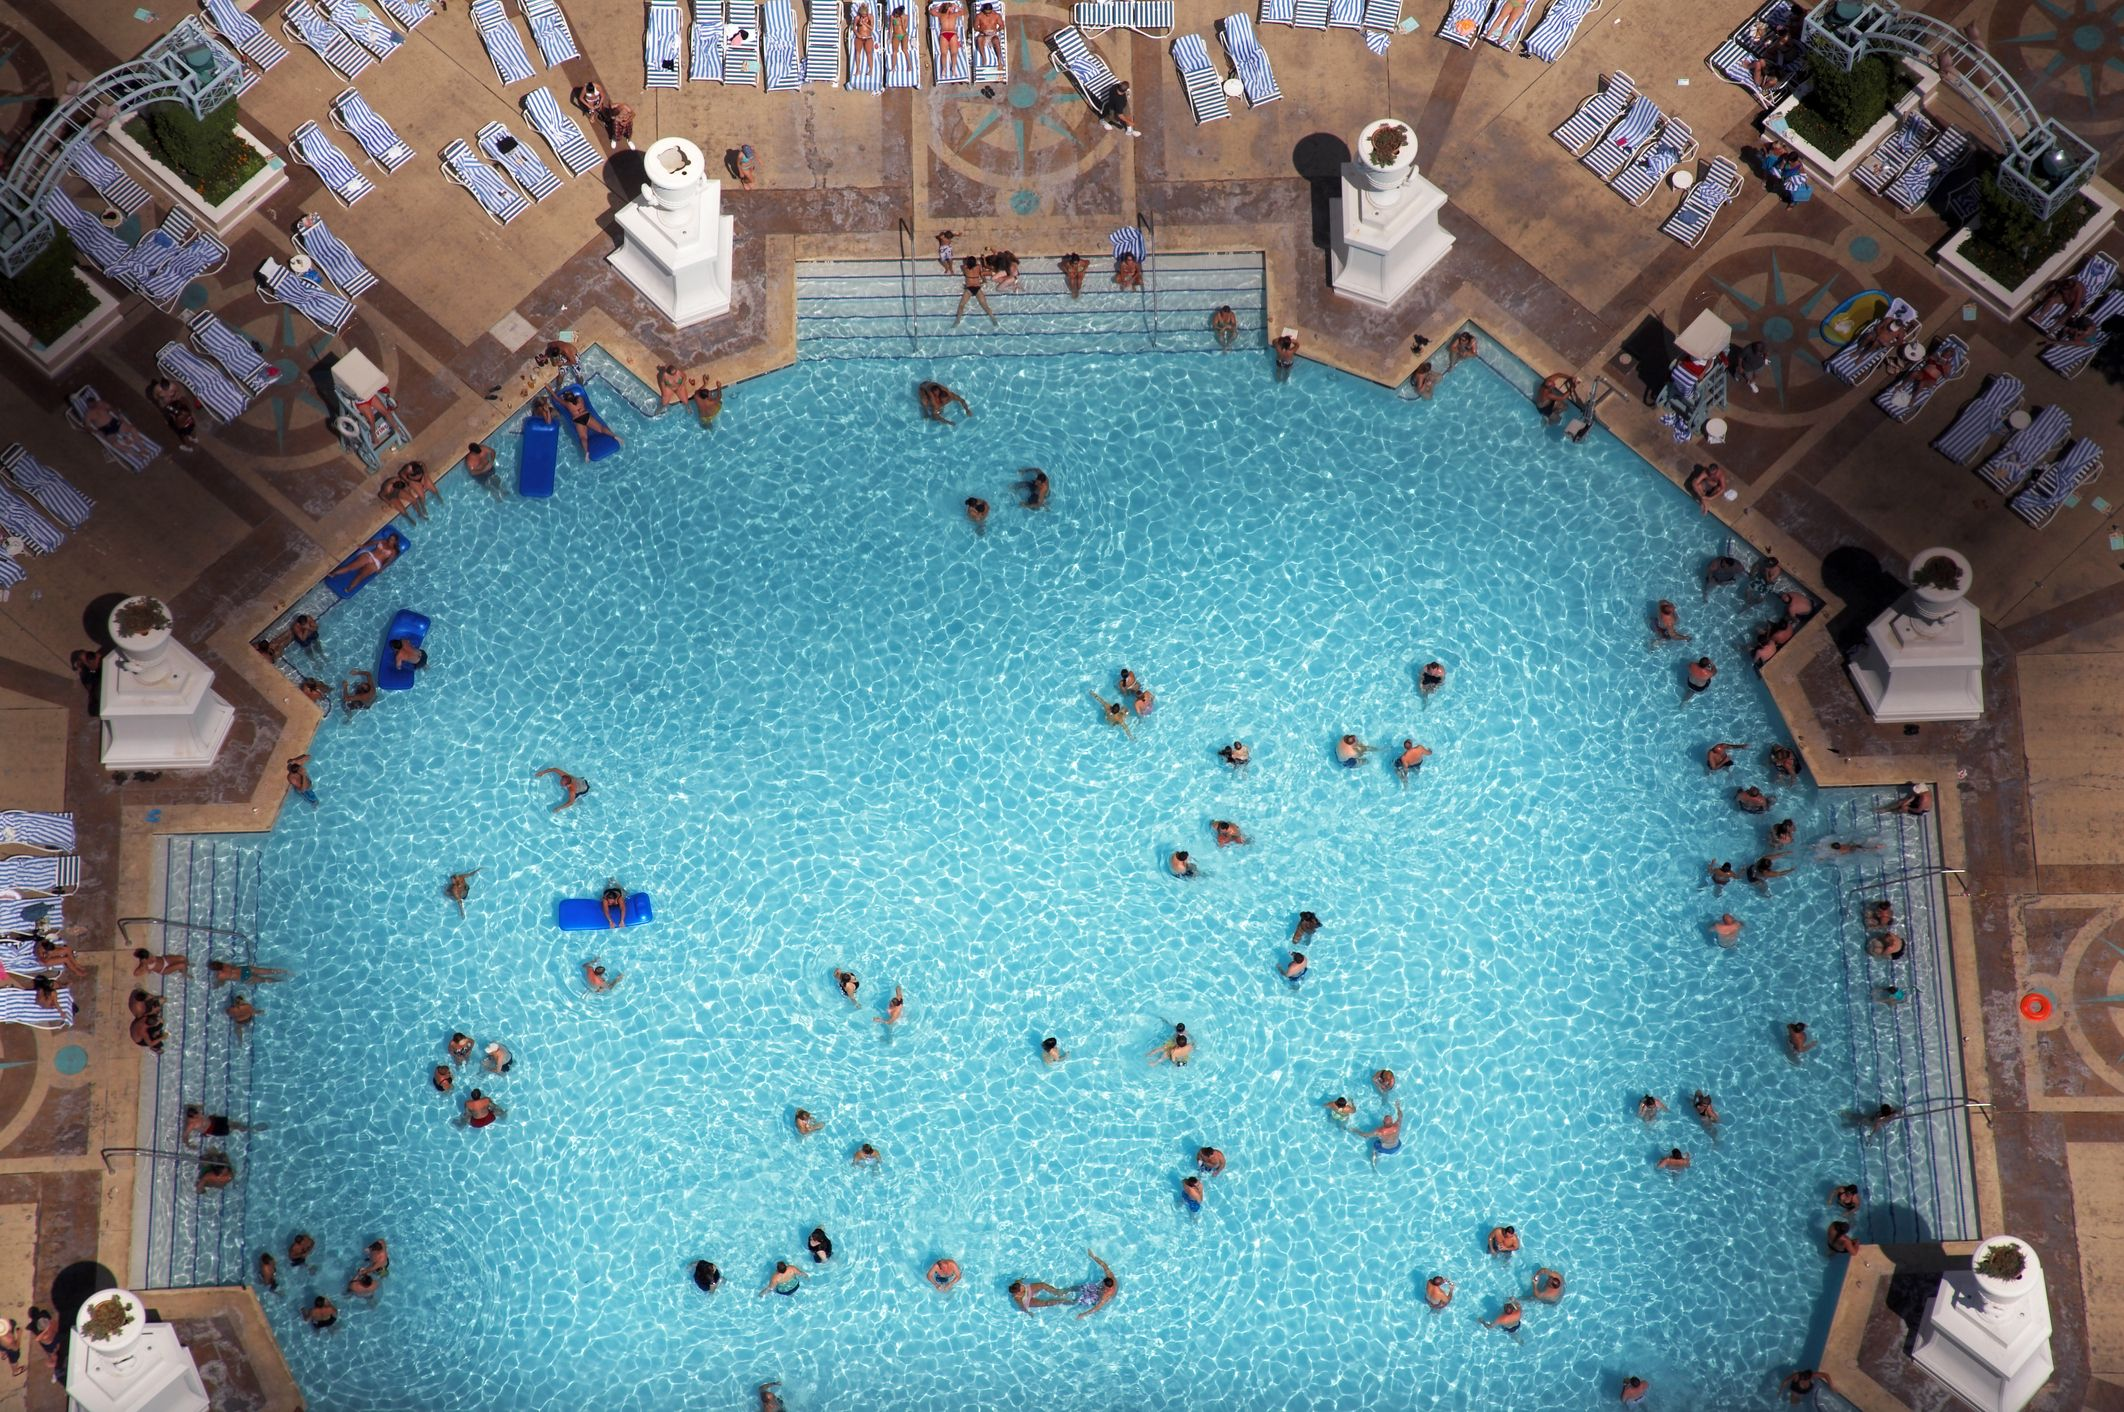 CDC Warns That If A Pool Smells Like Strong Chlorine It